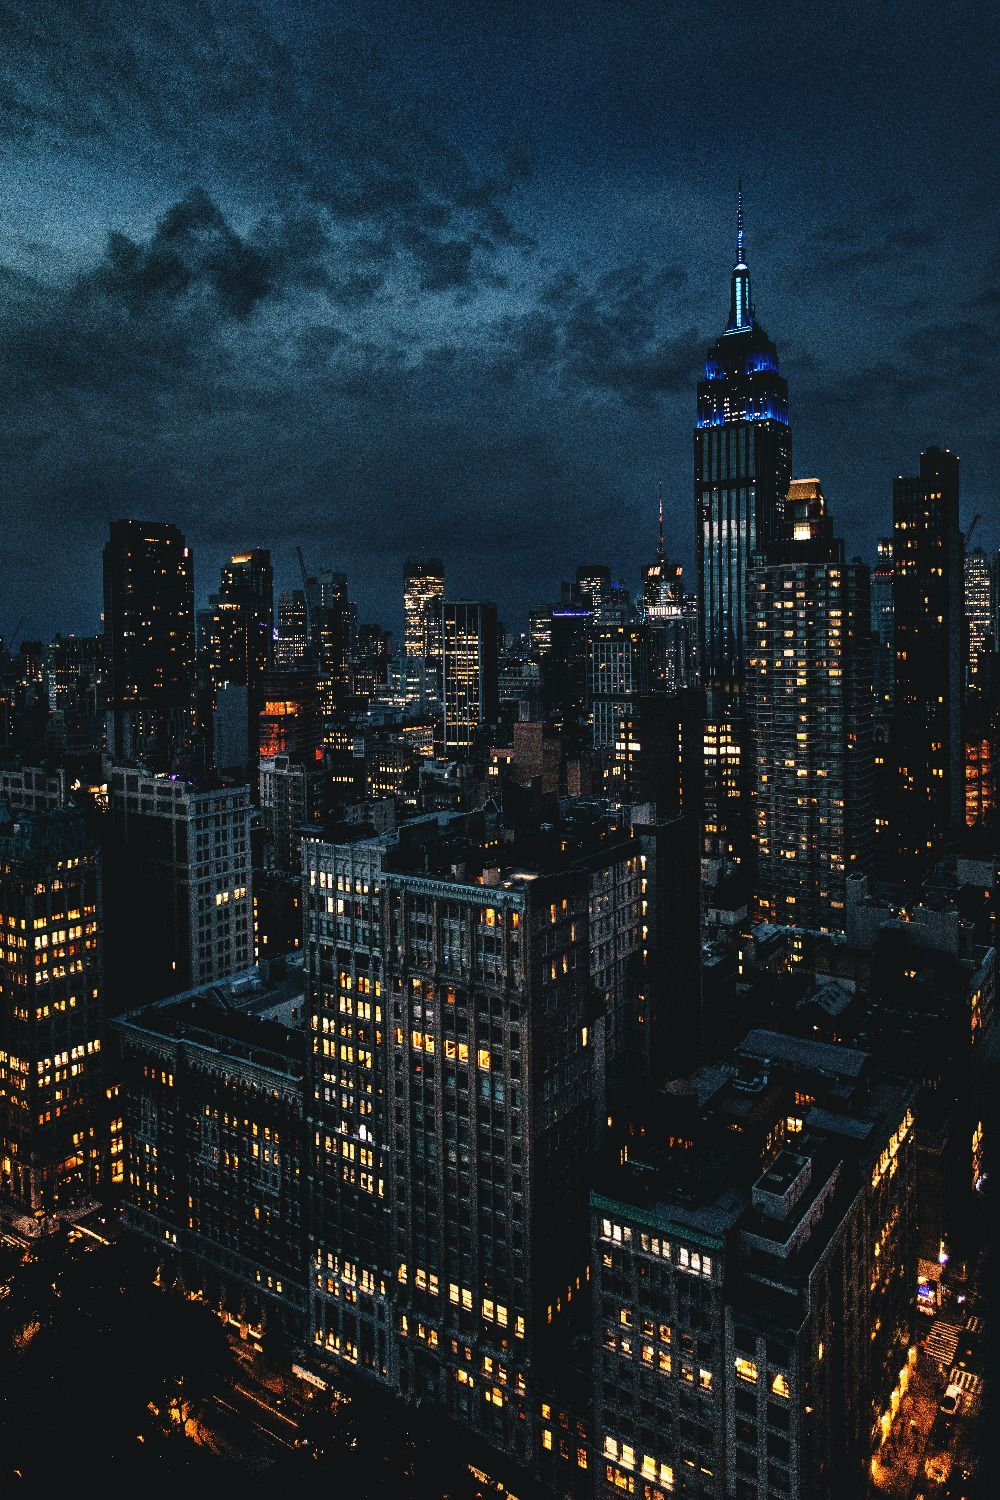 Downtown Night View From Above City Landscape City Aesthetic City Wallpaper